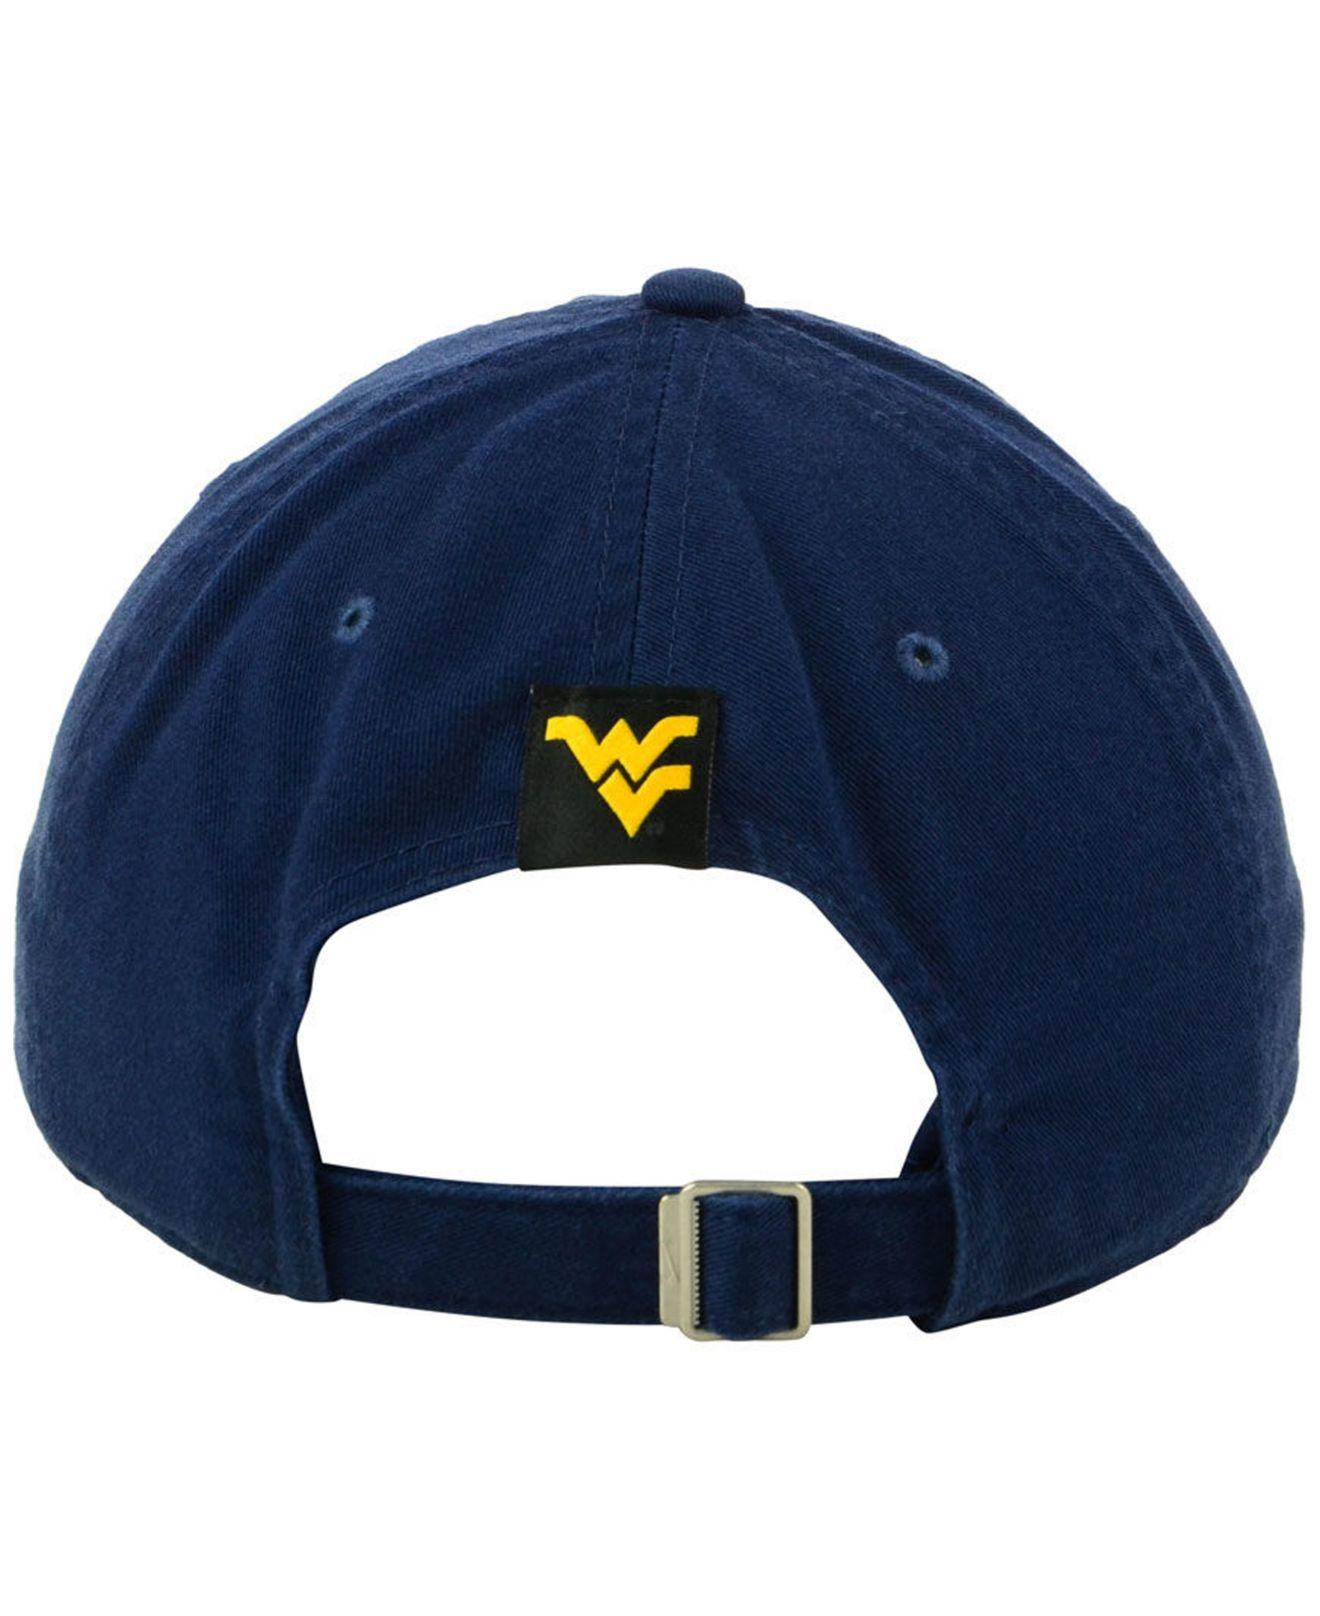 buy online 491b2 80785 Nike - Blue West Virginia Mountaineers H86 Wordmark Swoosh Cap for Men -  Lyst. View fullscreen